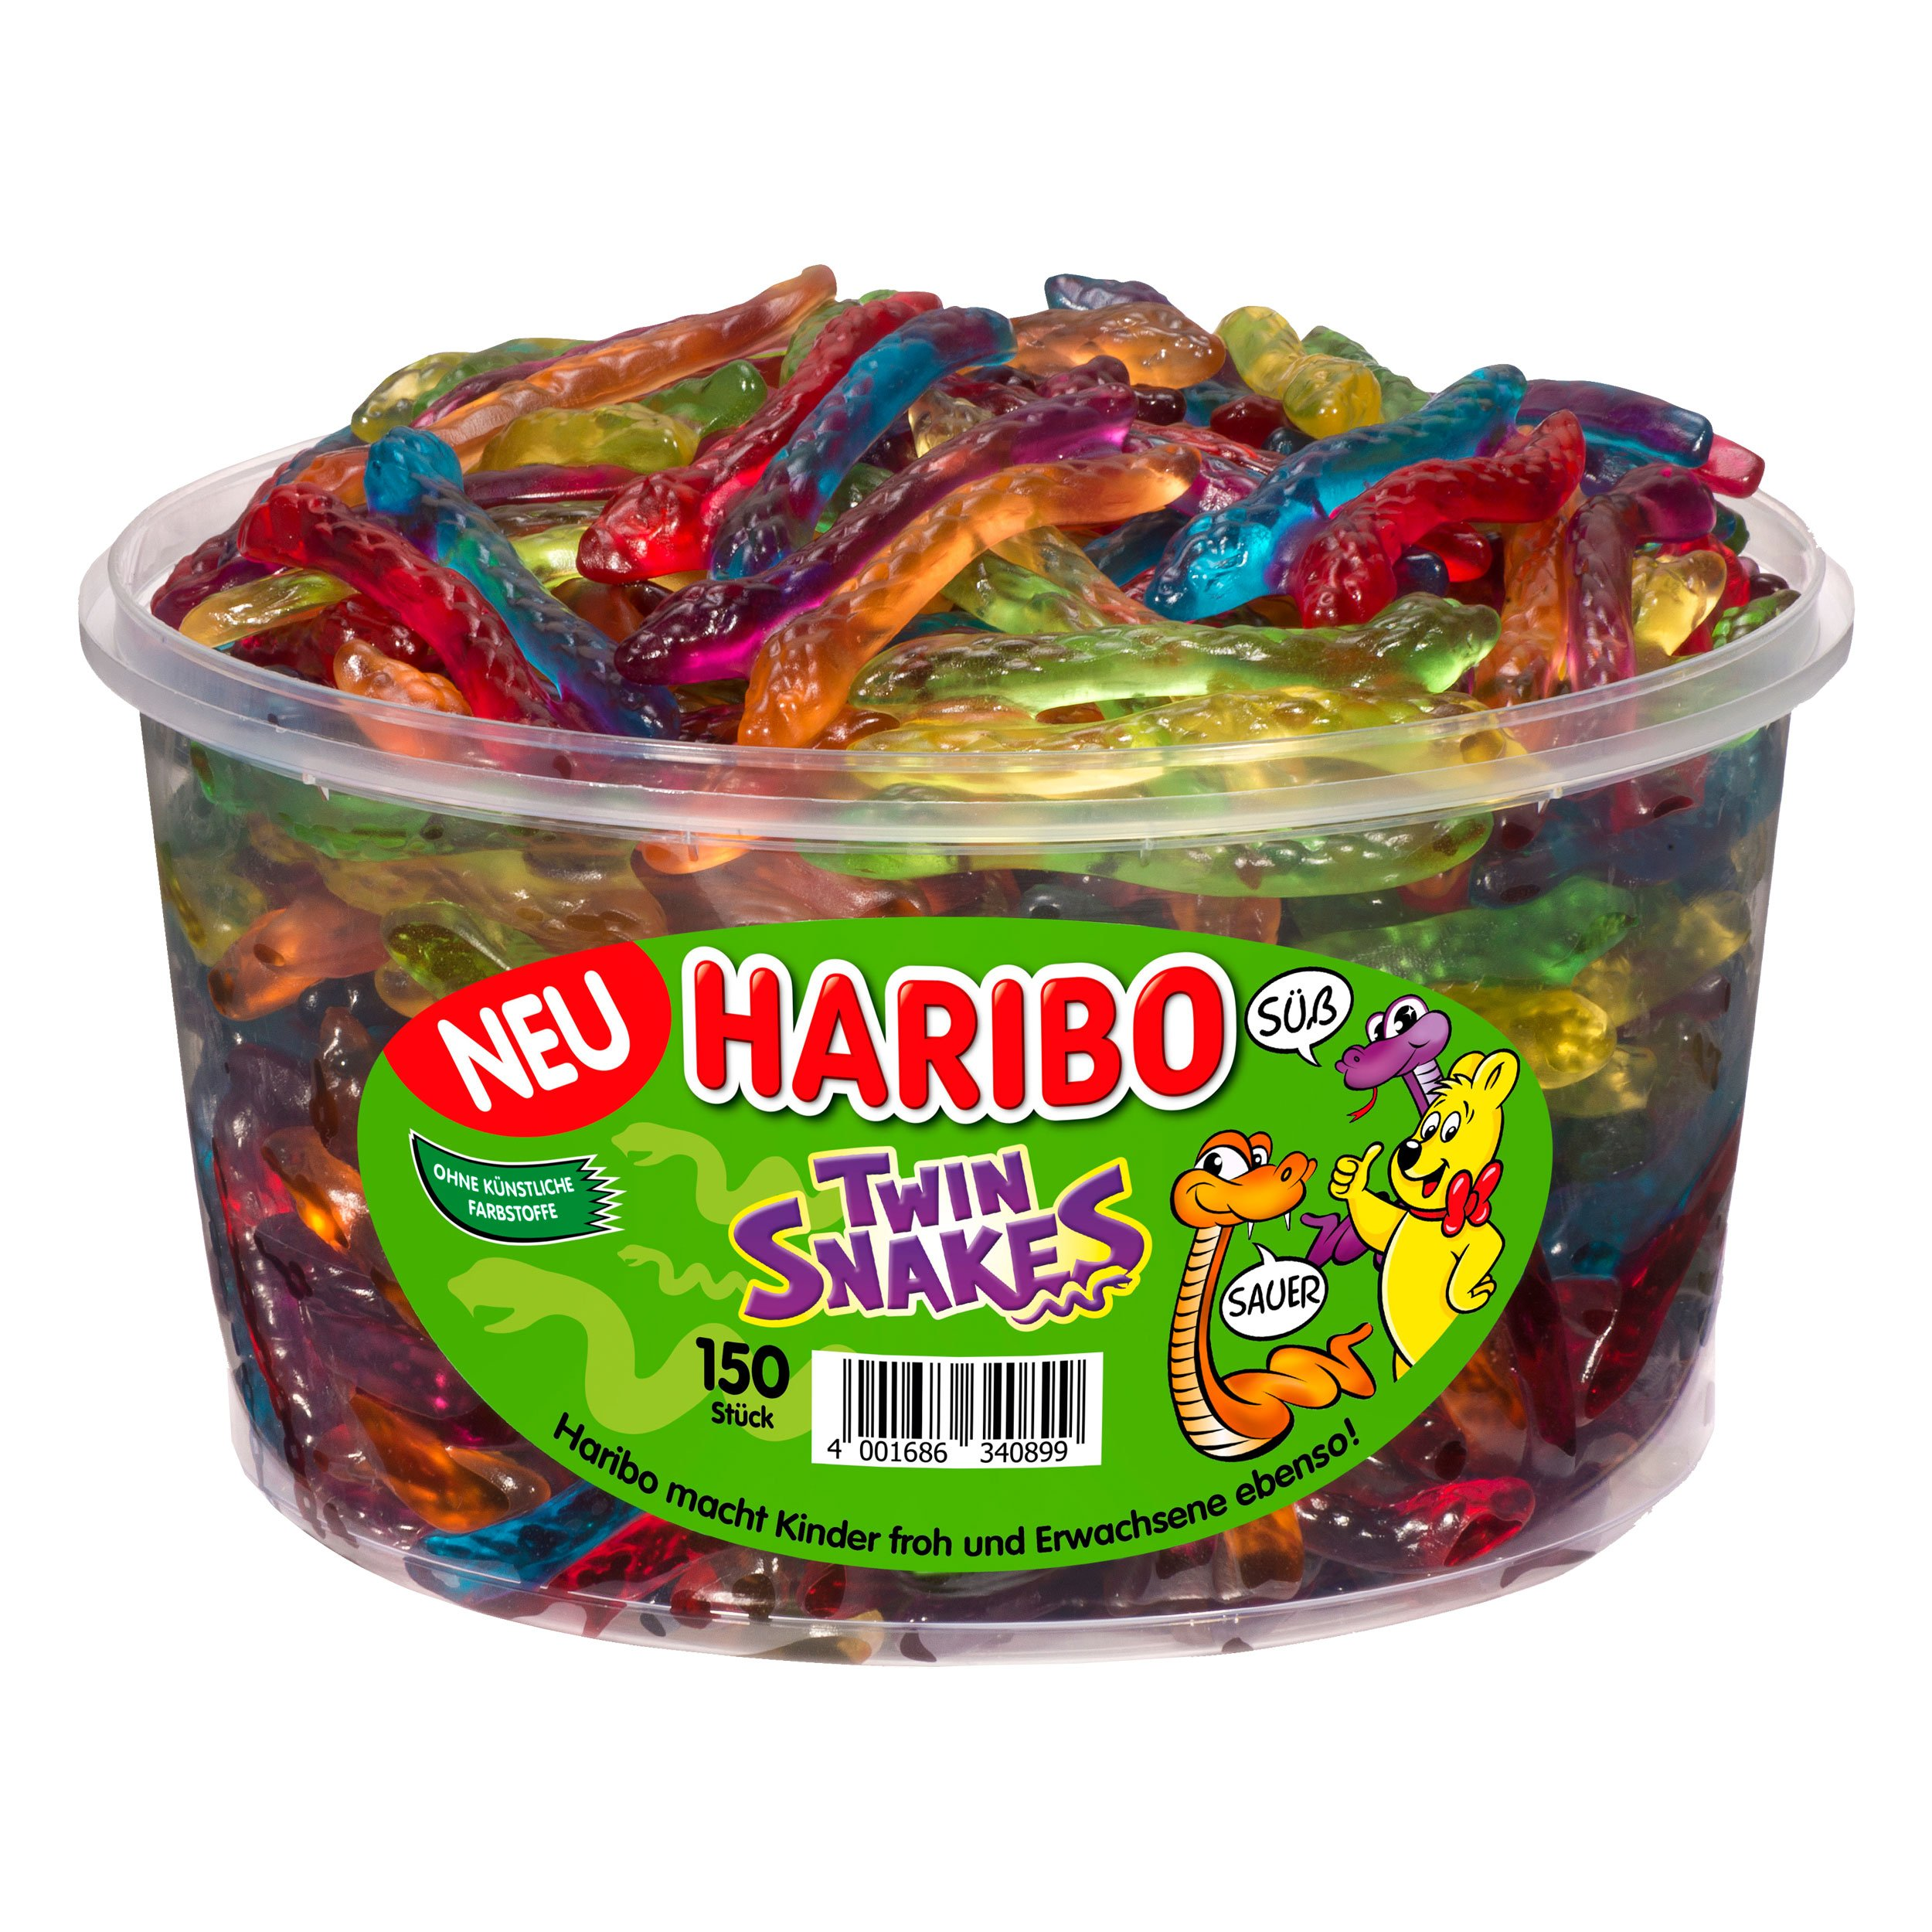 Haribo Twin Snakes 150 Pieces (1200g)